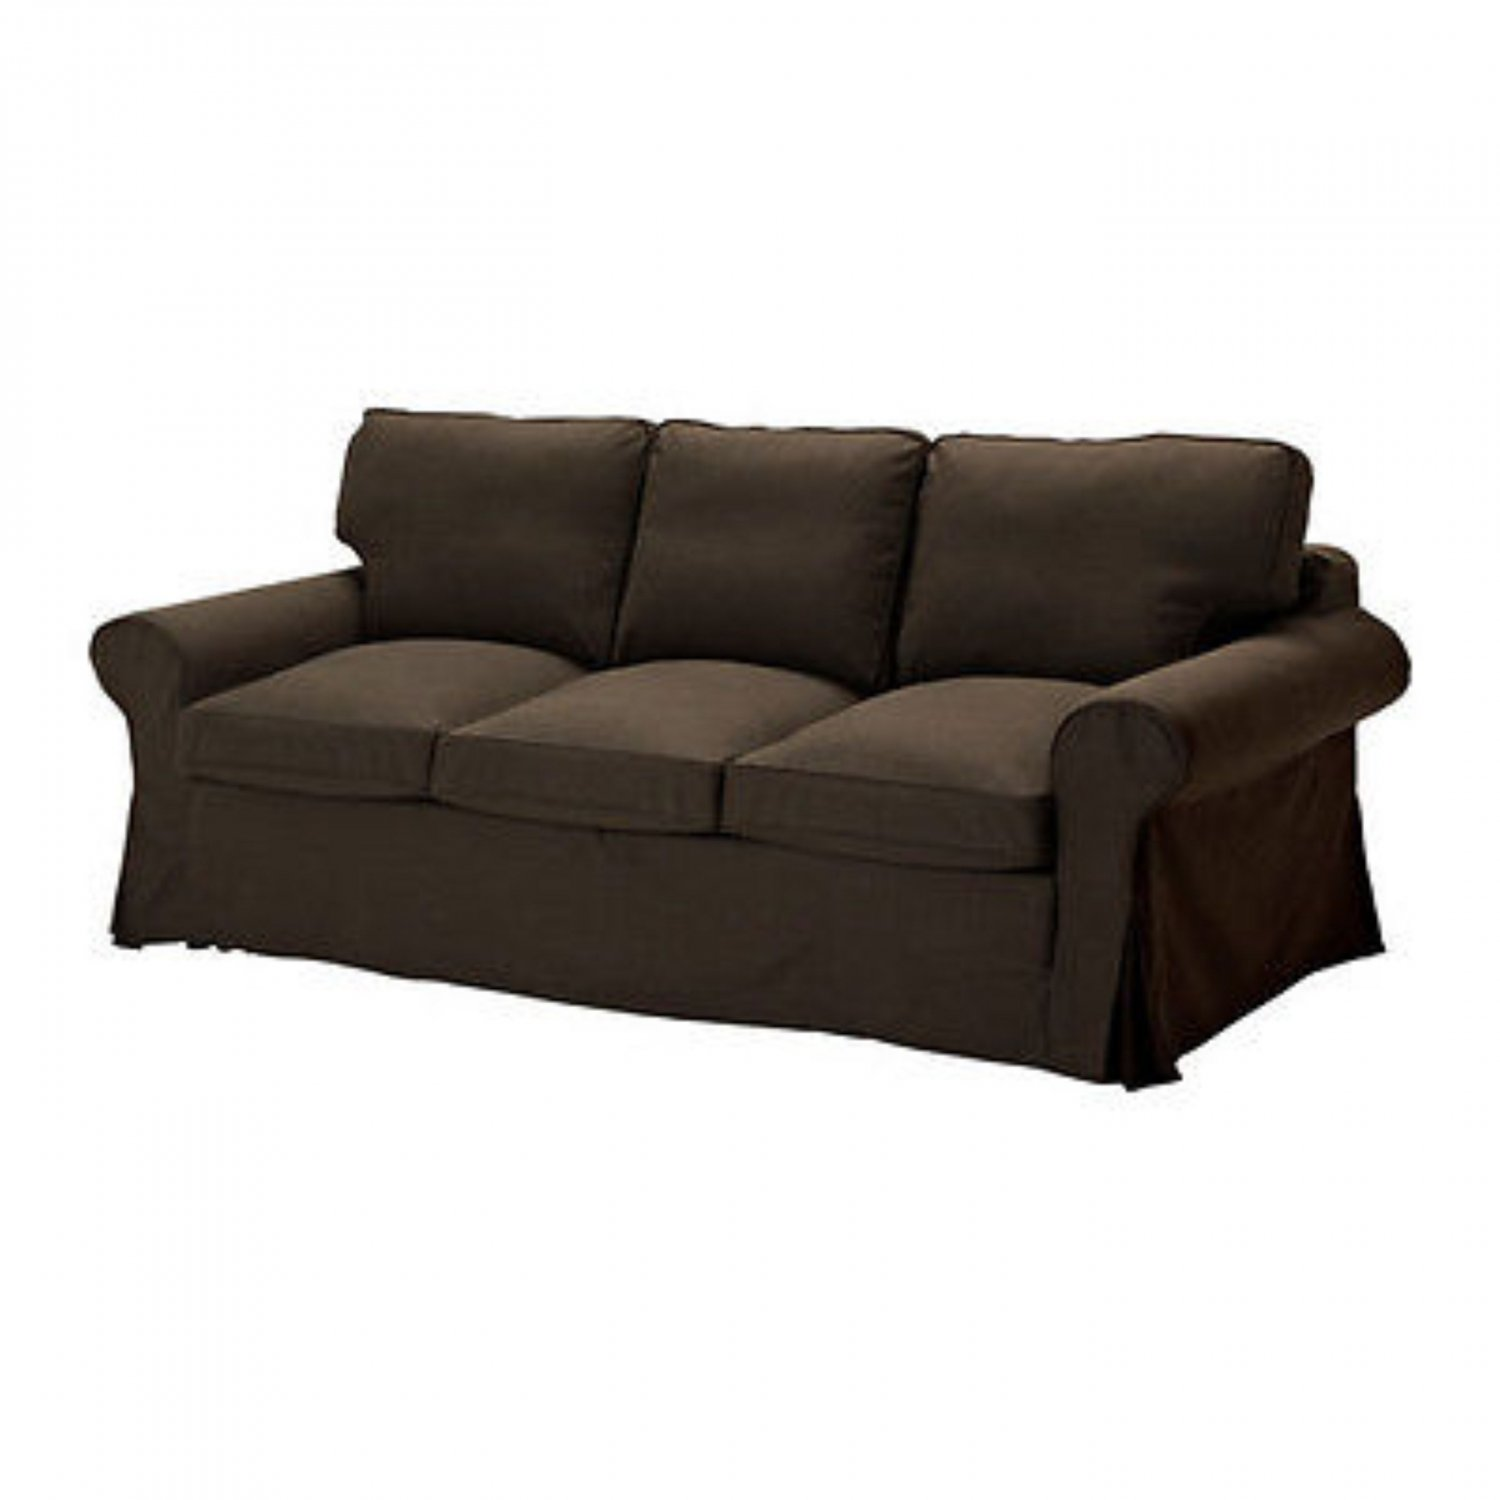 Ikea Ektorp Pixbo 3 seater Sofa Bed - Svanby Brown 301.824.28